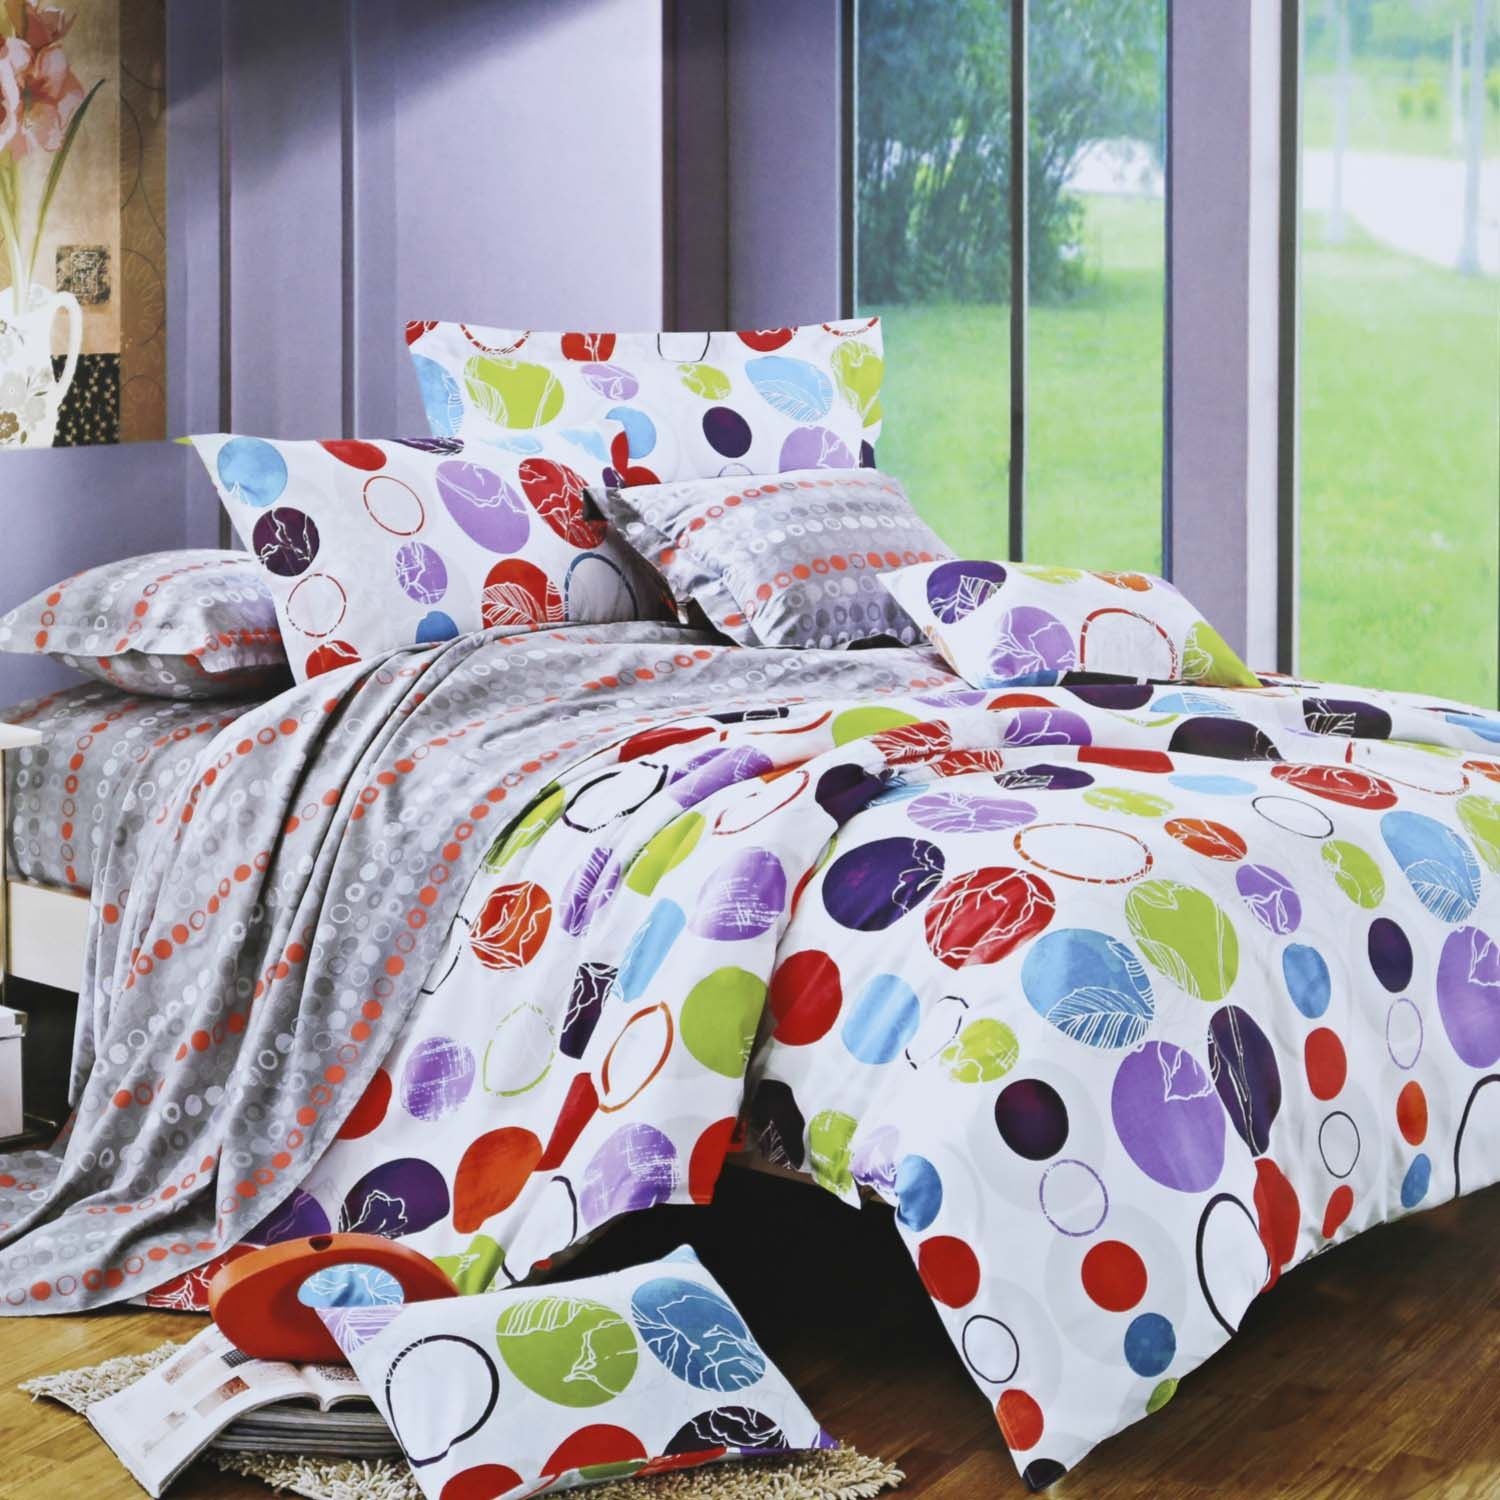 Each set contains one duvet cover, two pillow shams (With